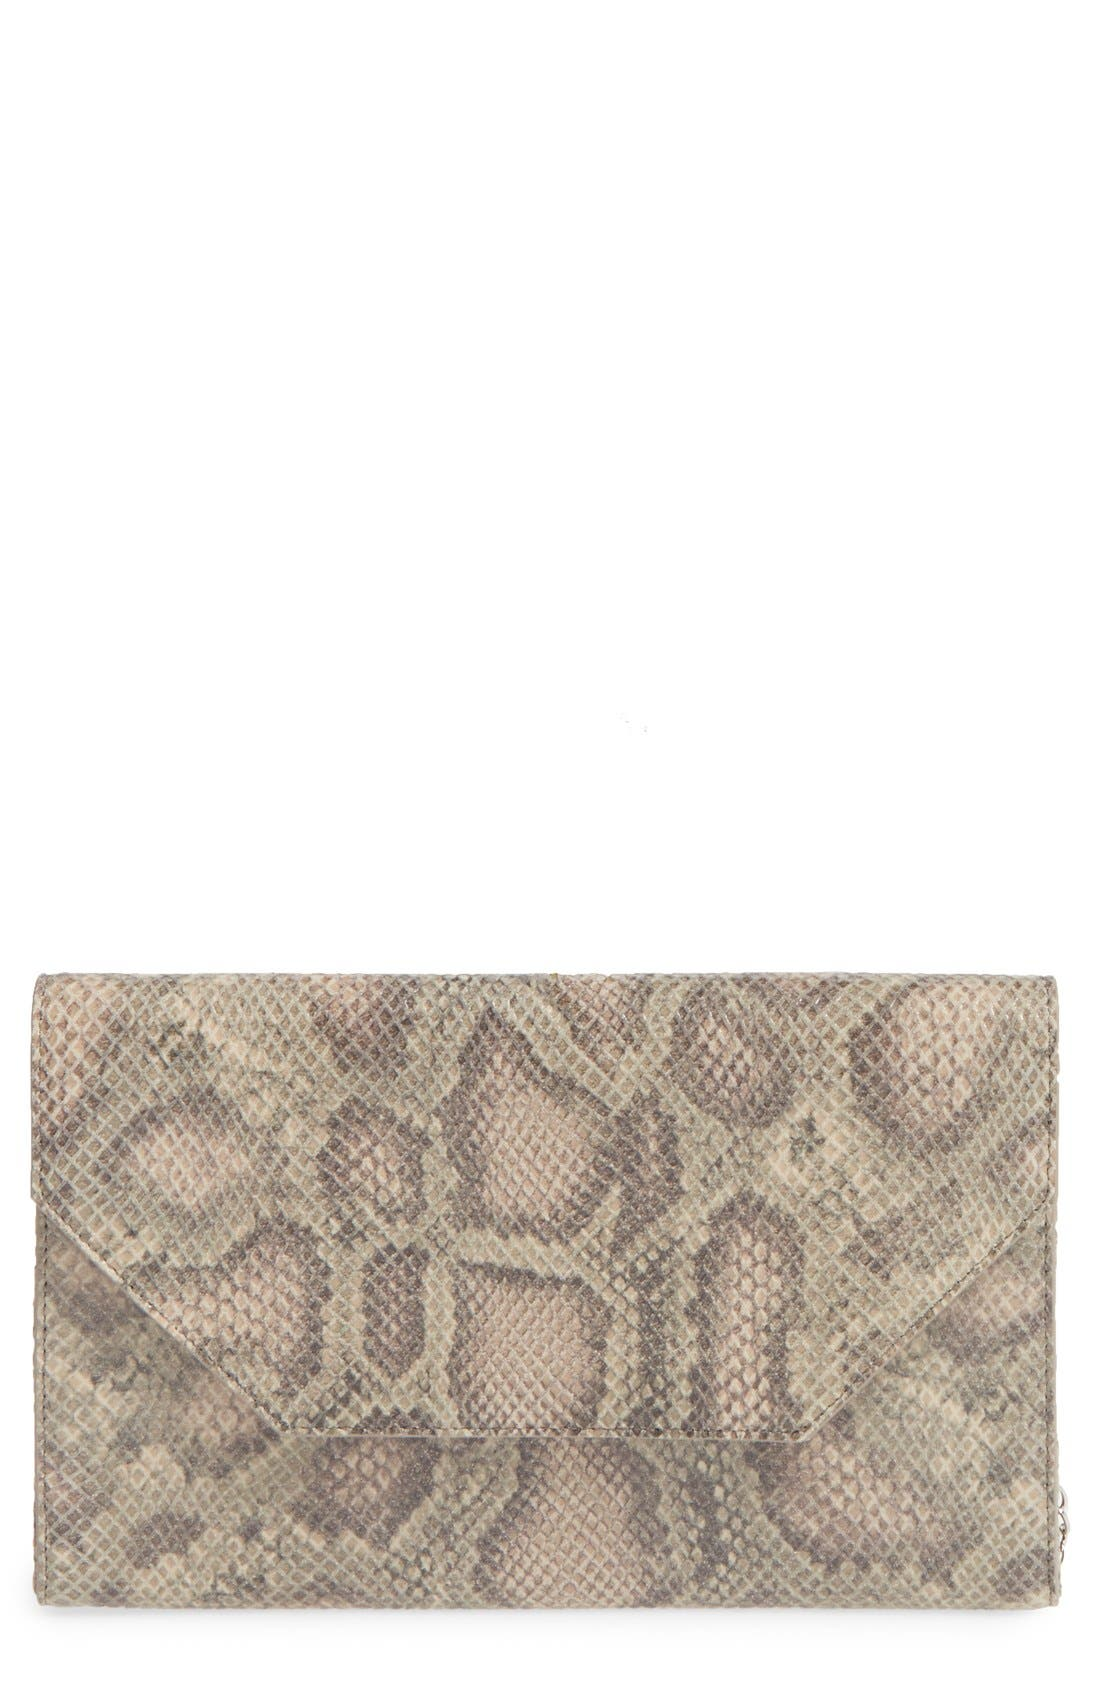 Angled Leather Day Clutch,                             Main thumbnail 1, color,                             Brown Falcon Snake